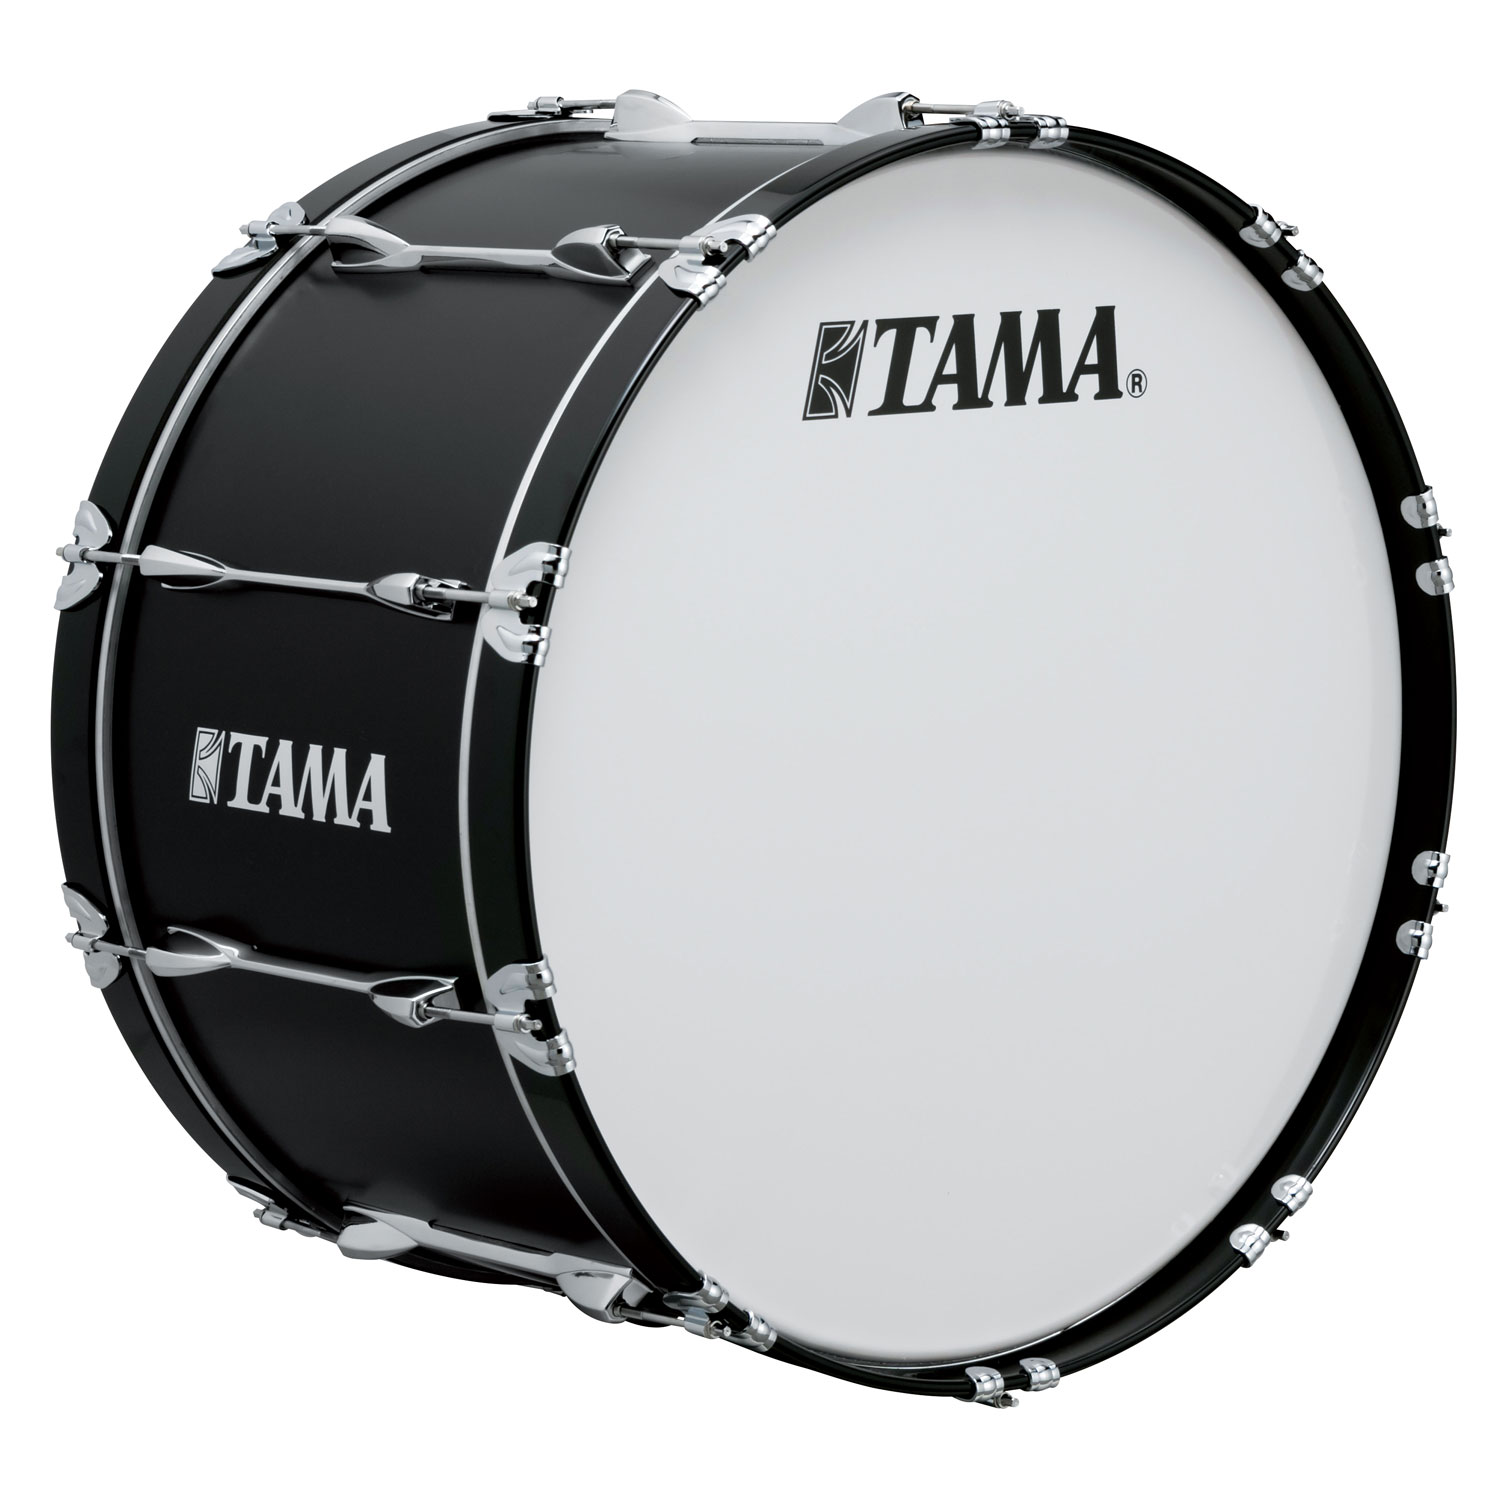 "Tama 26"" StarLight Marching Bass Drum in Satin Black Lacquer"